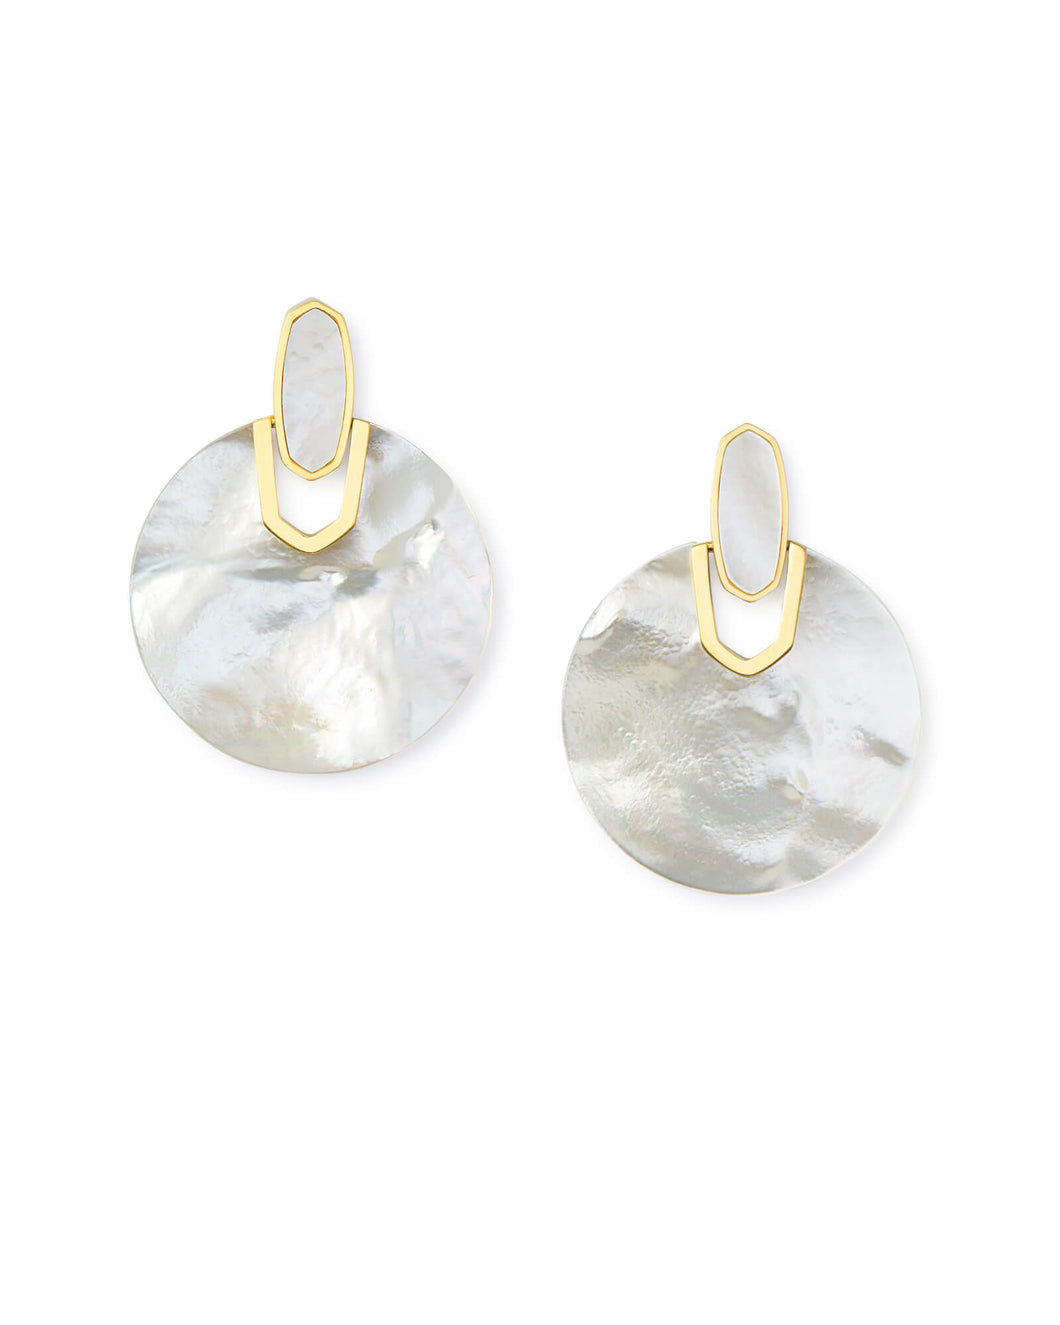 DIDI EARRING GOLD IVORY MOP